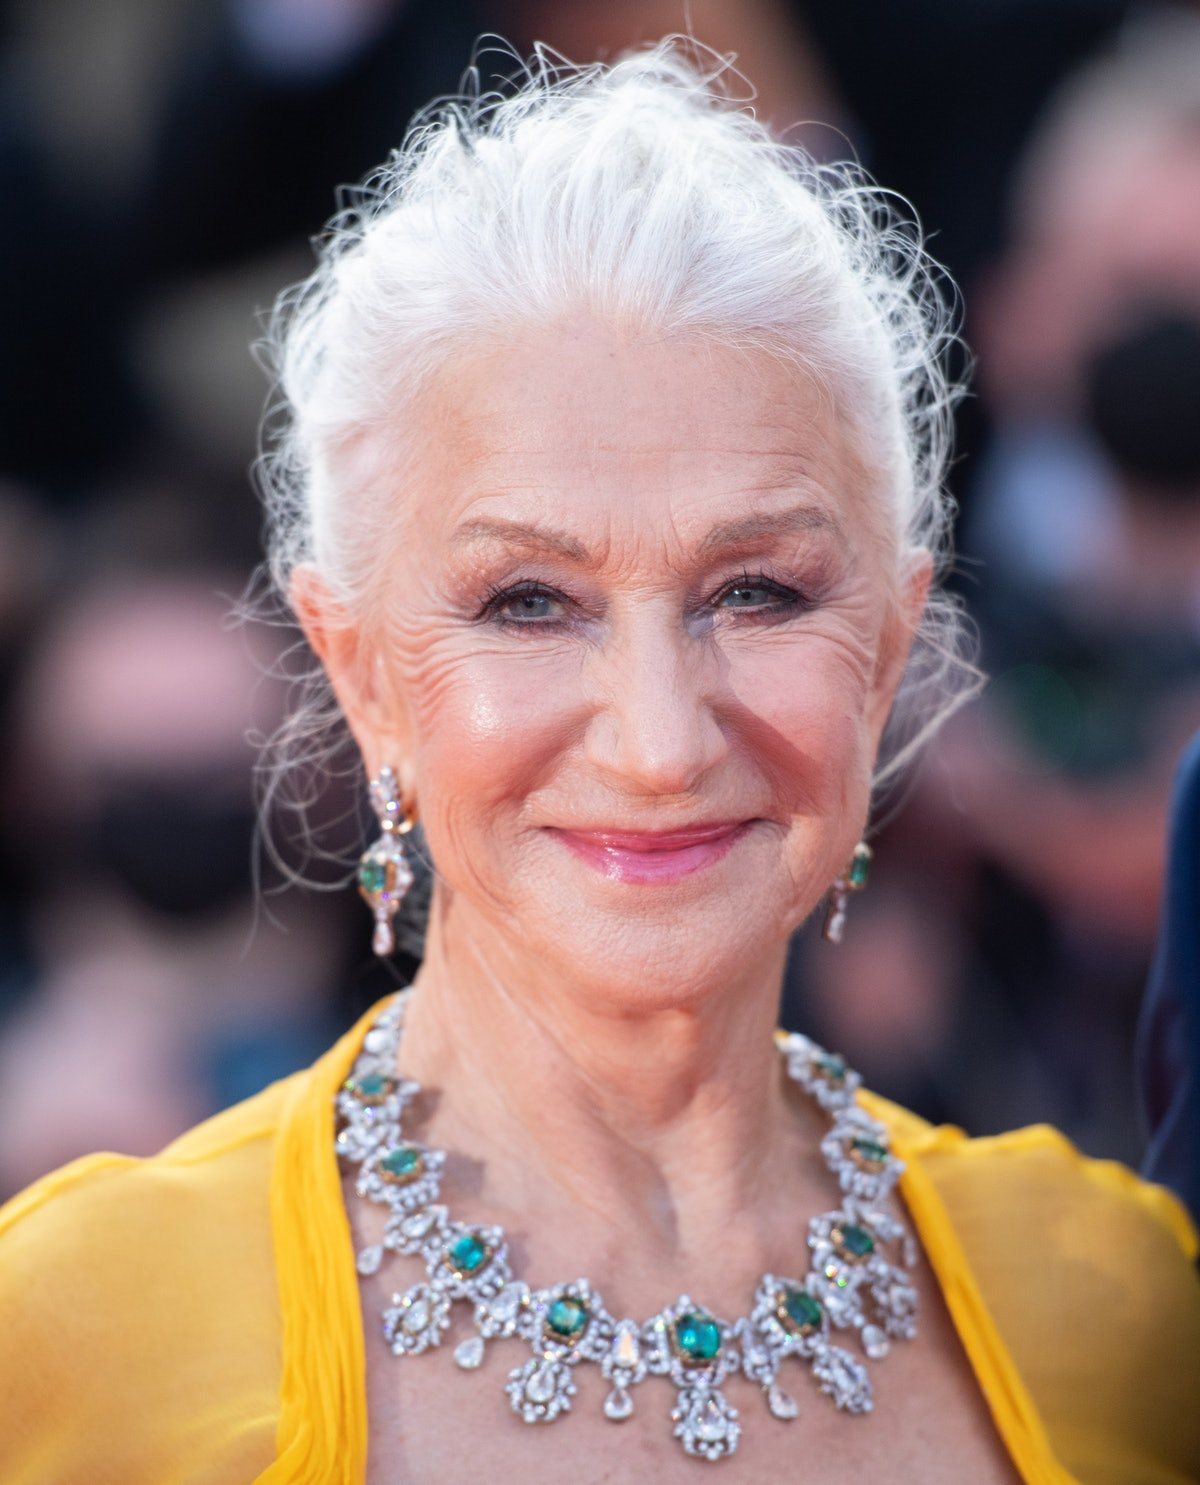 """CANNES, FRANCE - JULY 06: Helen Mirren attends the """"Annette"""" screening and opening ceremony during the 74th annual Cannes Film Festival on July 06, 2021 in Cannes, France. (Photo by Samir Hussein/WireImage)"""